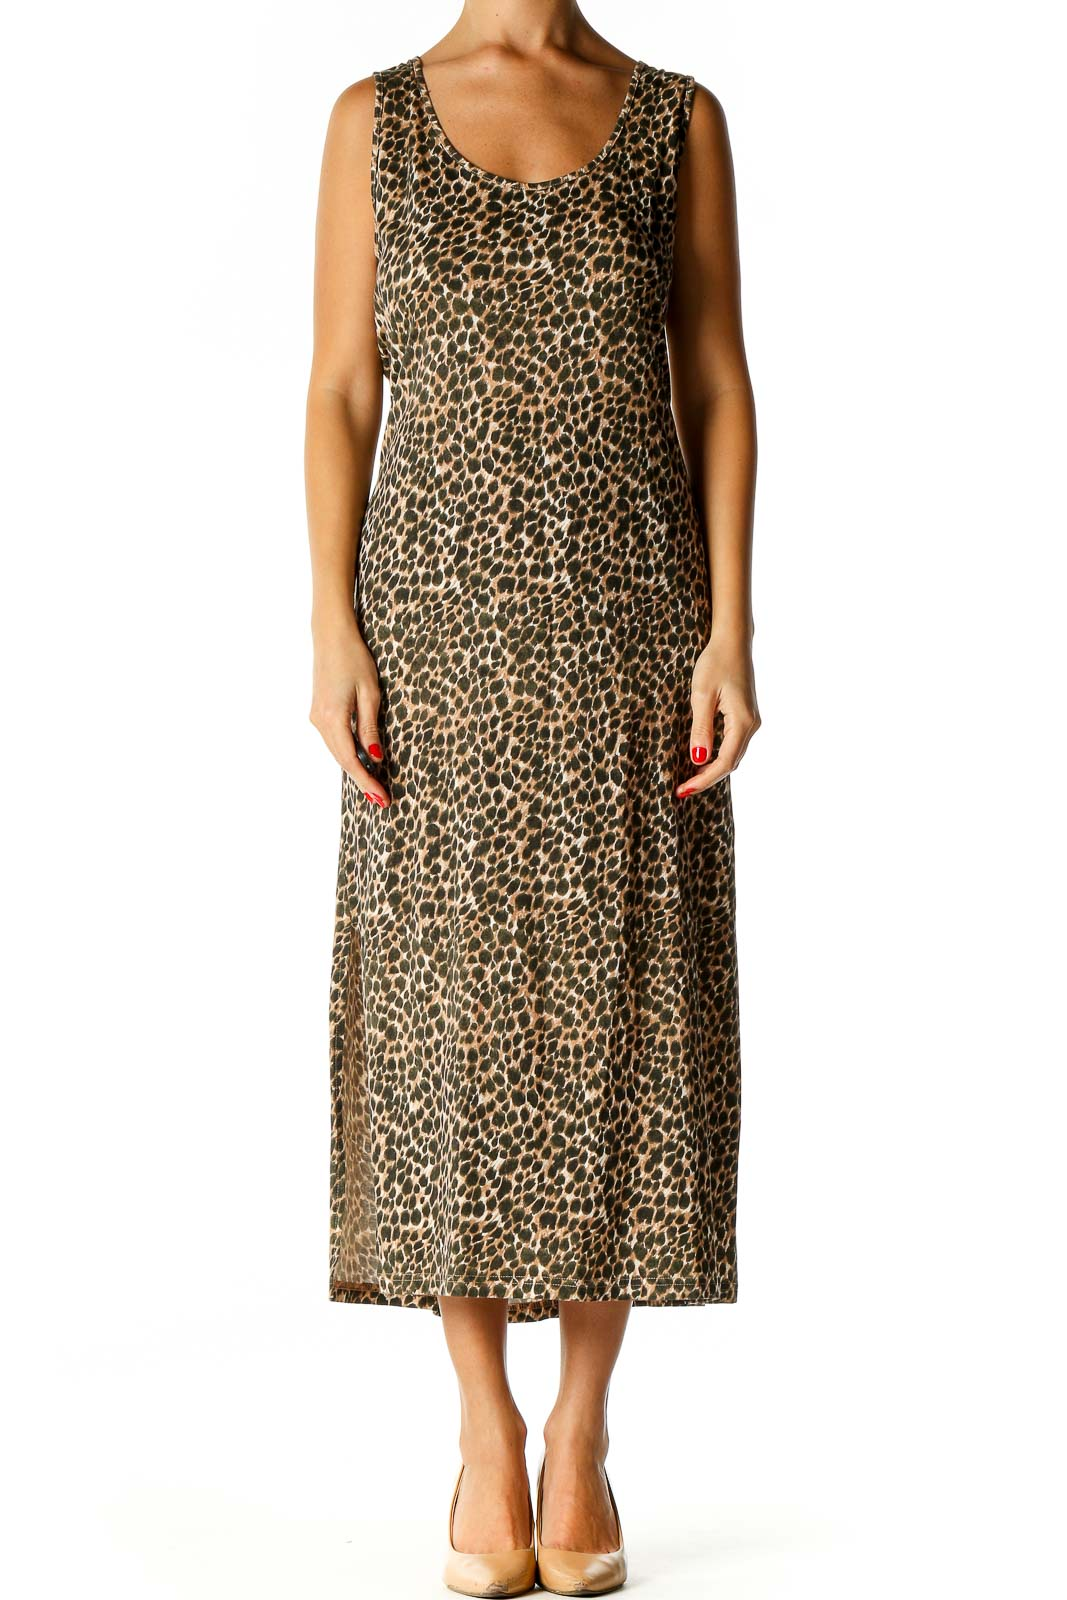 Brown Floral Print Bohemian Sheath Dress Front